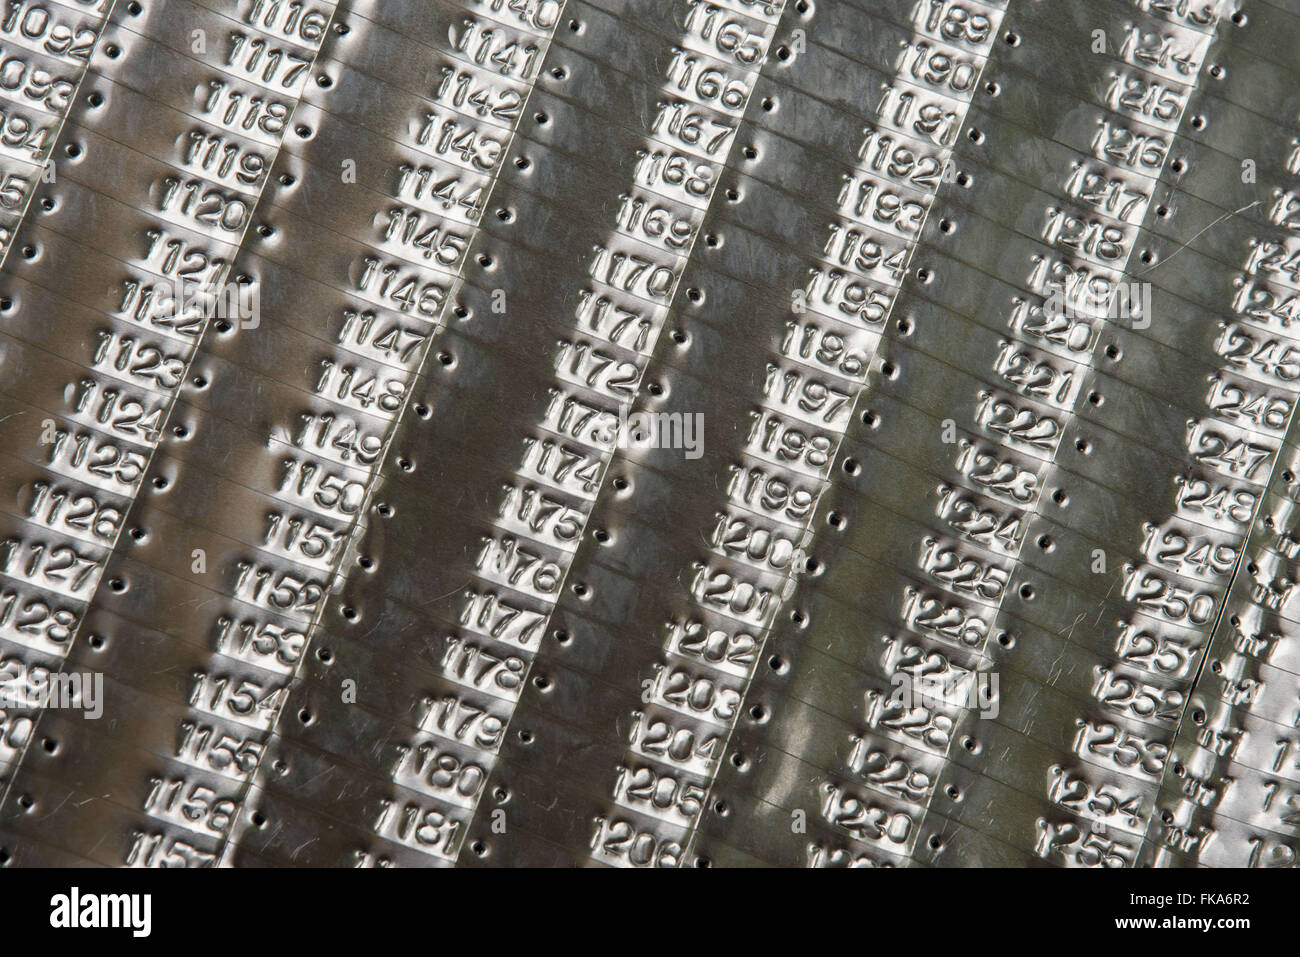 Aluminum plate where the numbers are recorded to identify the trees - Stock Image